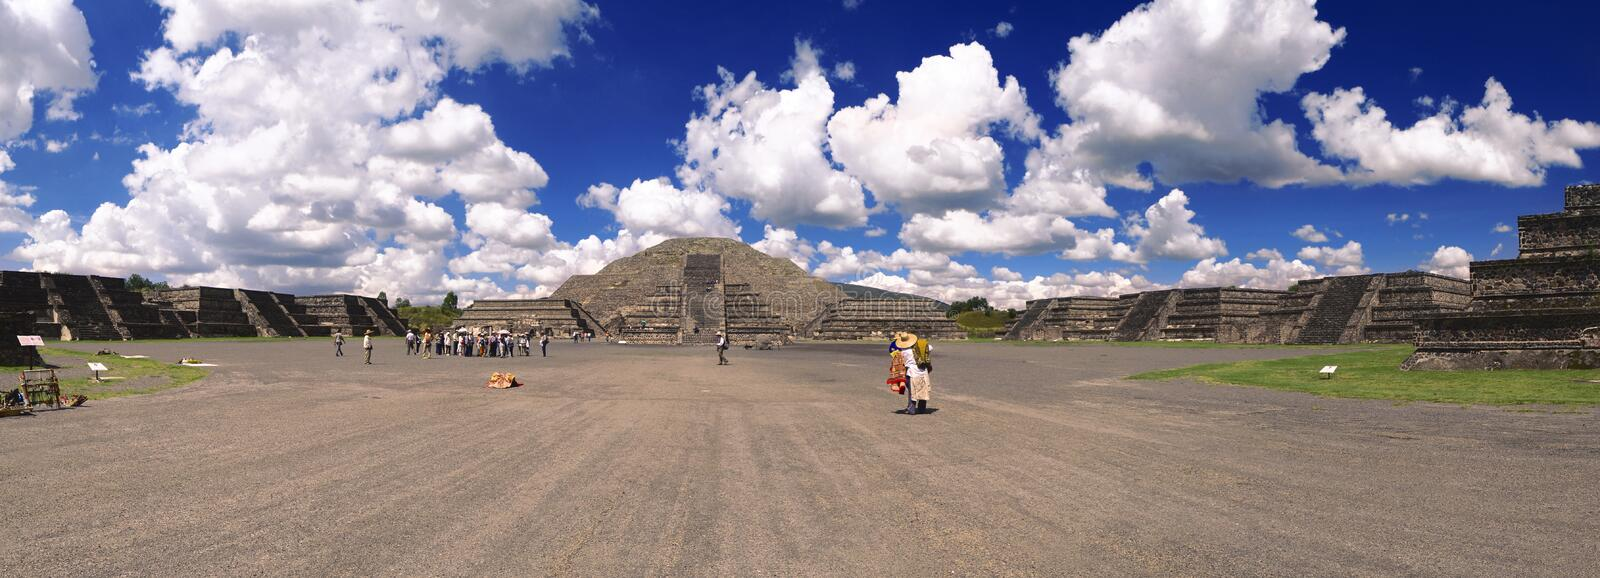 Teotihuacan Mexico Pyramid of the moon royalty free stock images